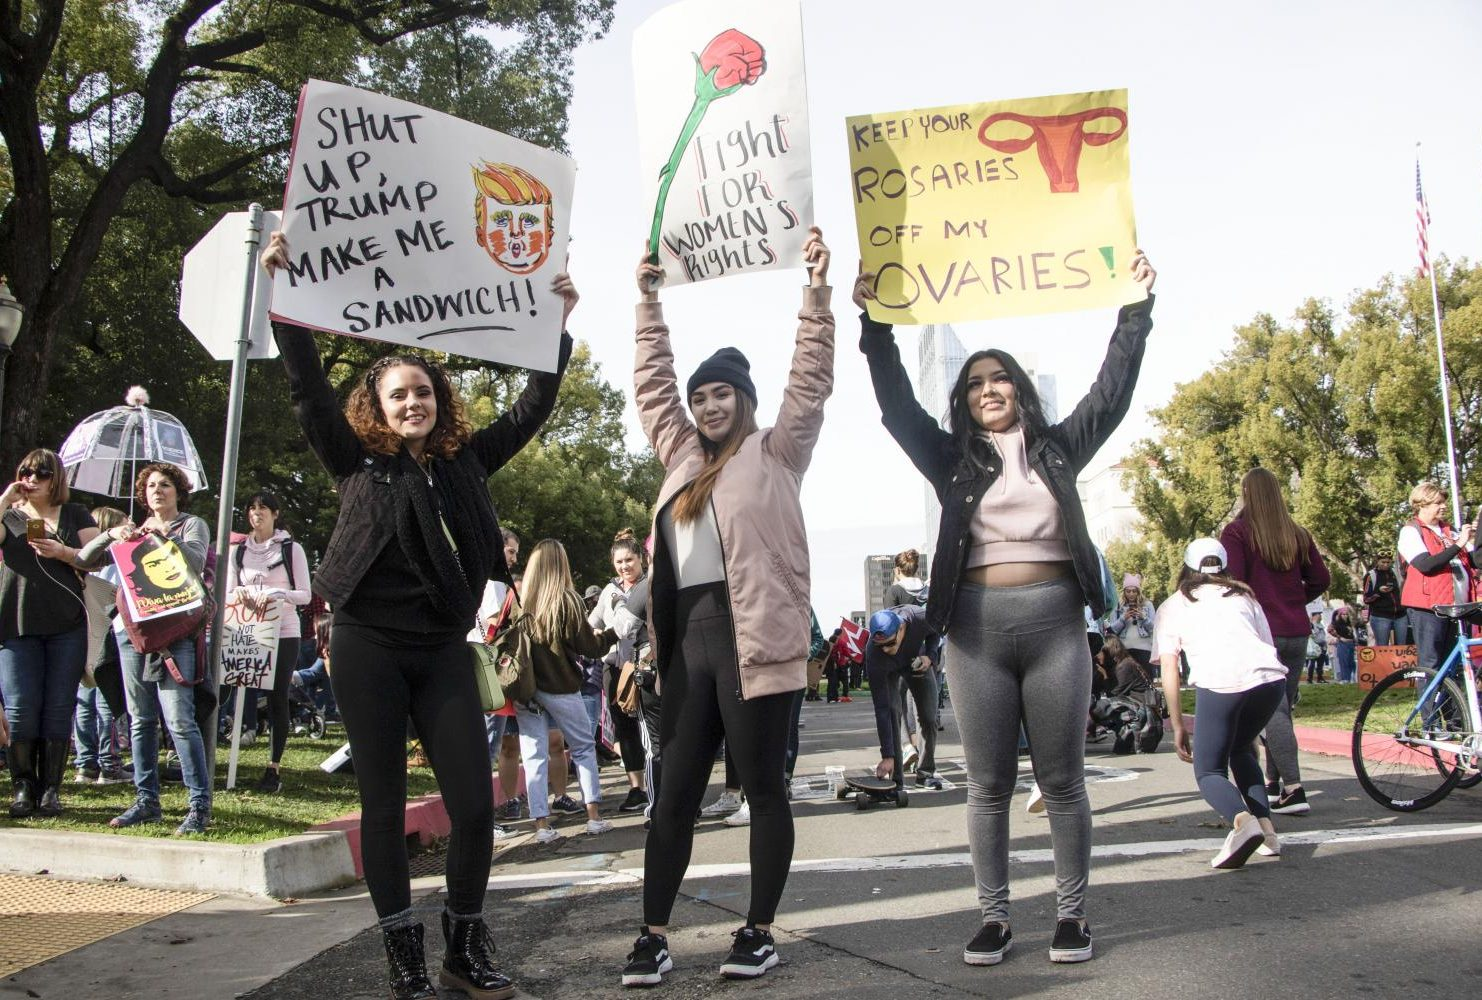 "articipants of the third annual Women's March hold up signs that reads left to right ""Shut Up Trump Make Me A Sandwich"", ""Fight For Women's Rights"" and ""Keep Rosaries Off My Ovaries"" at the California State Capitol in Sacramento, Calif. on Jan. 19, 2019."